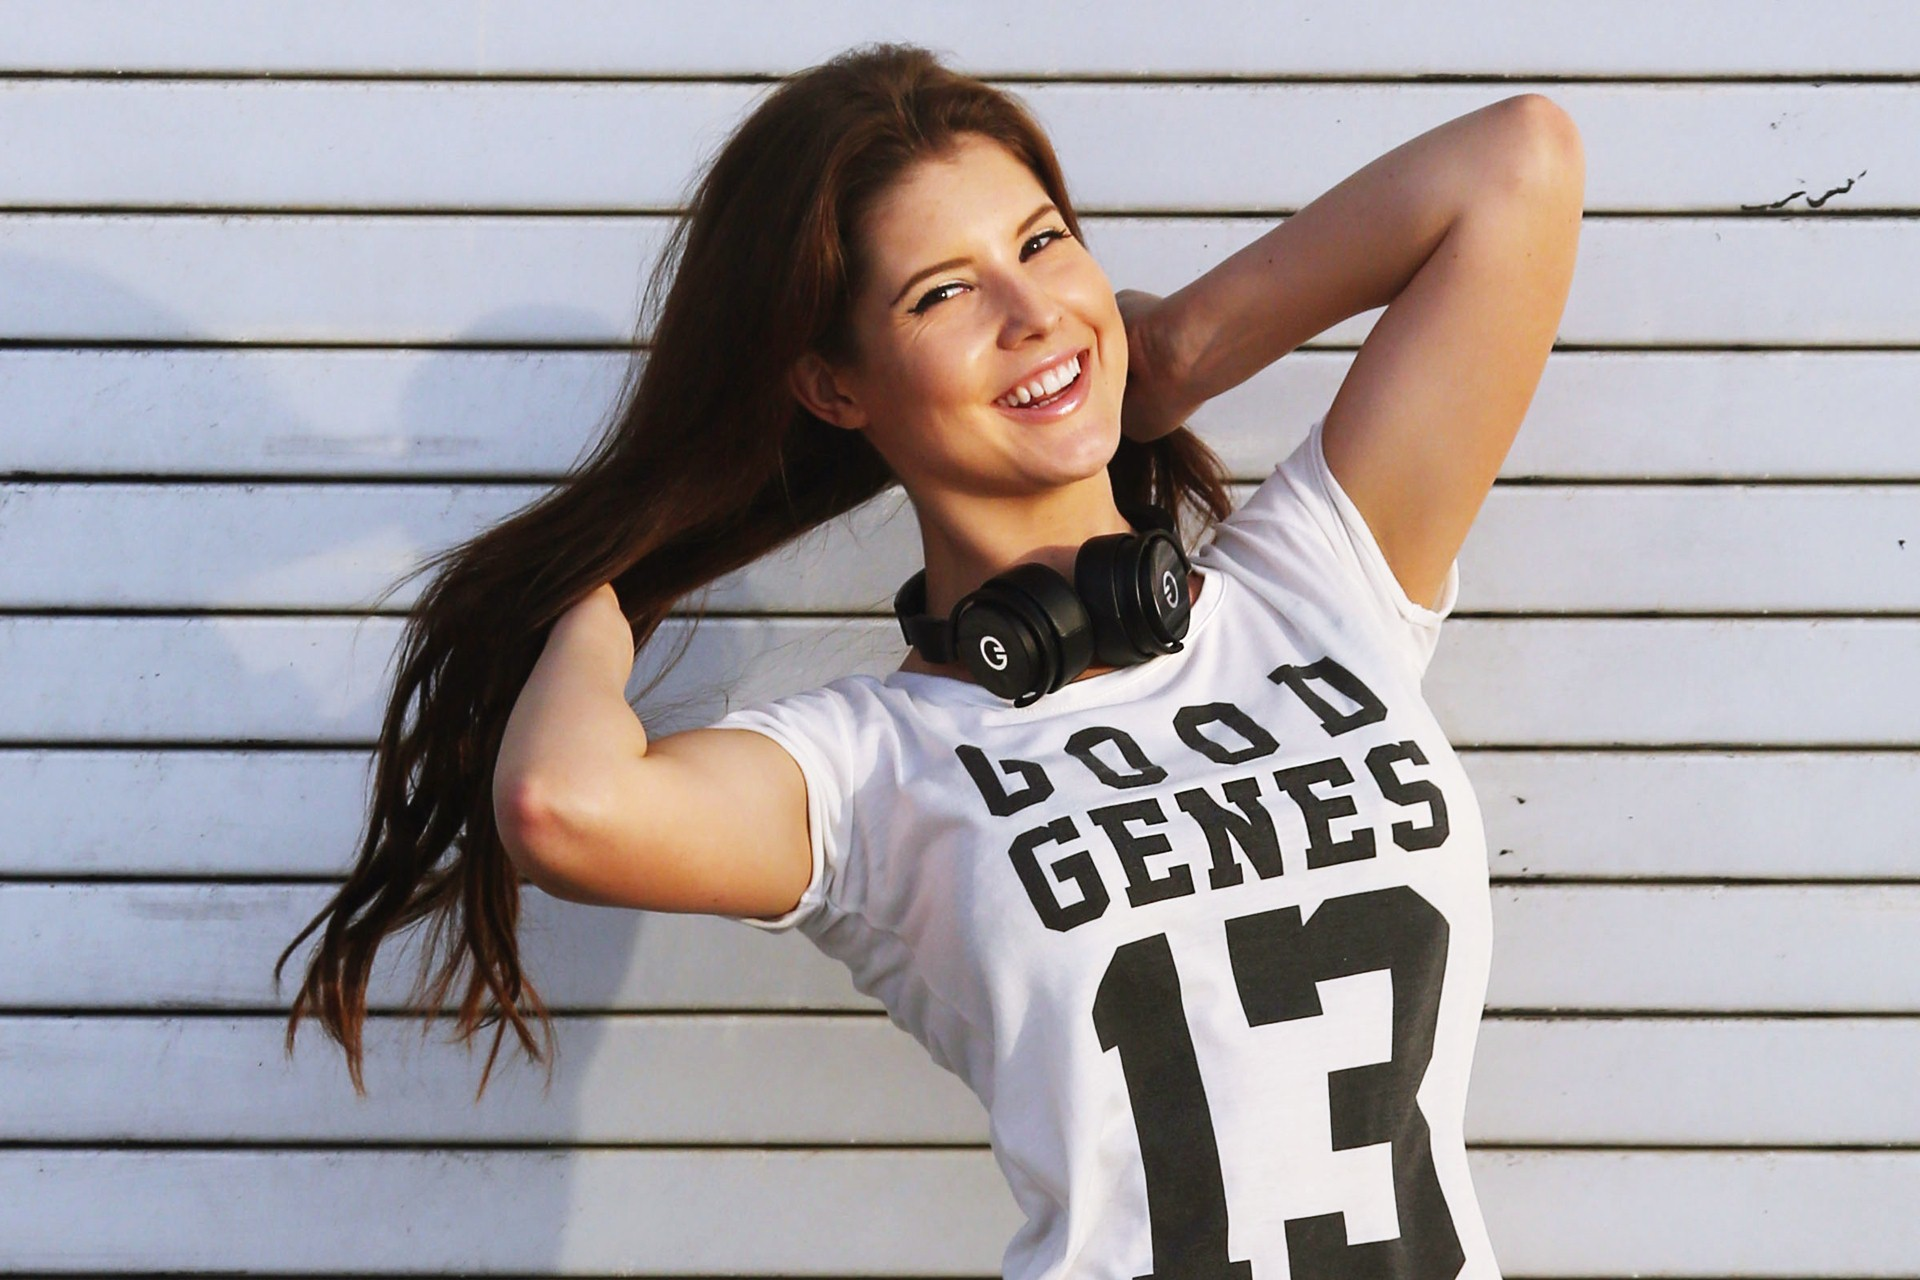 amanda cerny laptop free hd download photos